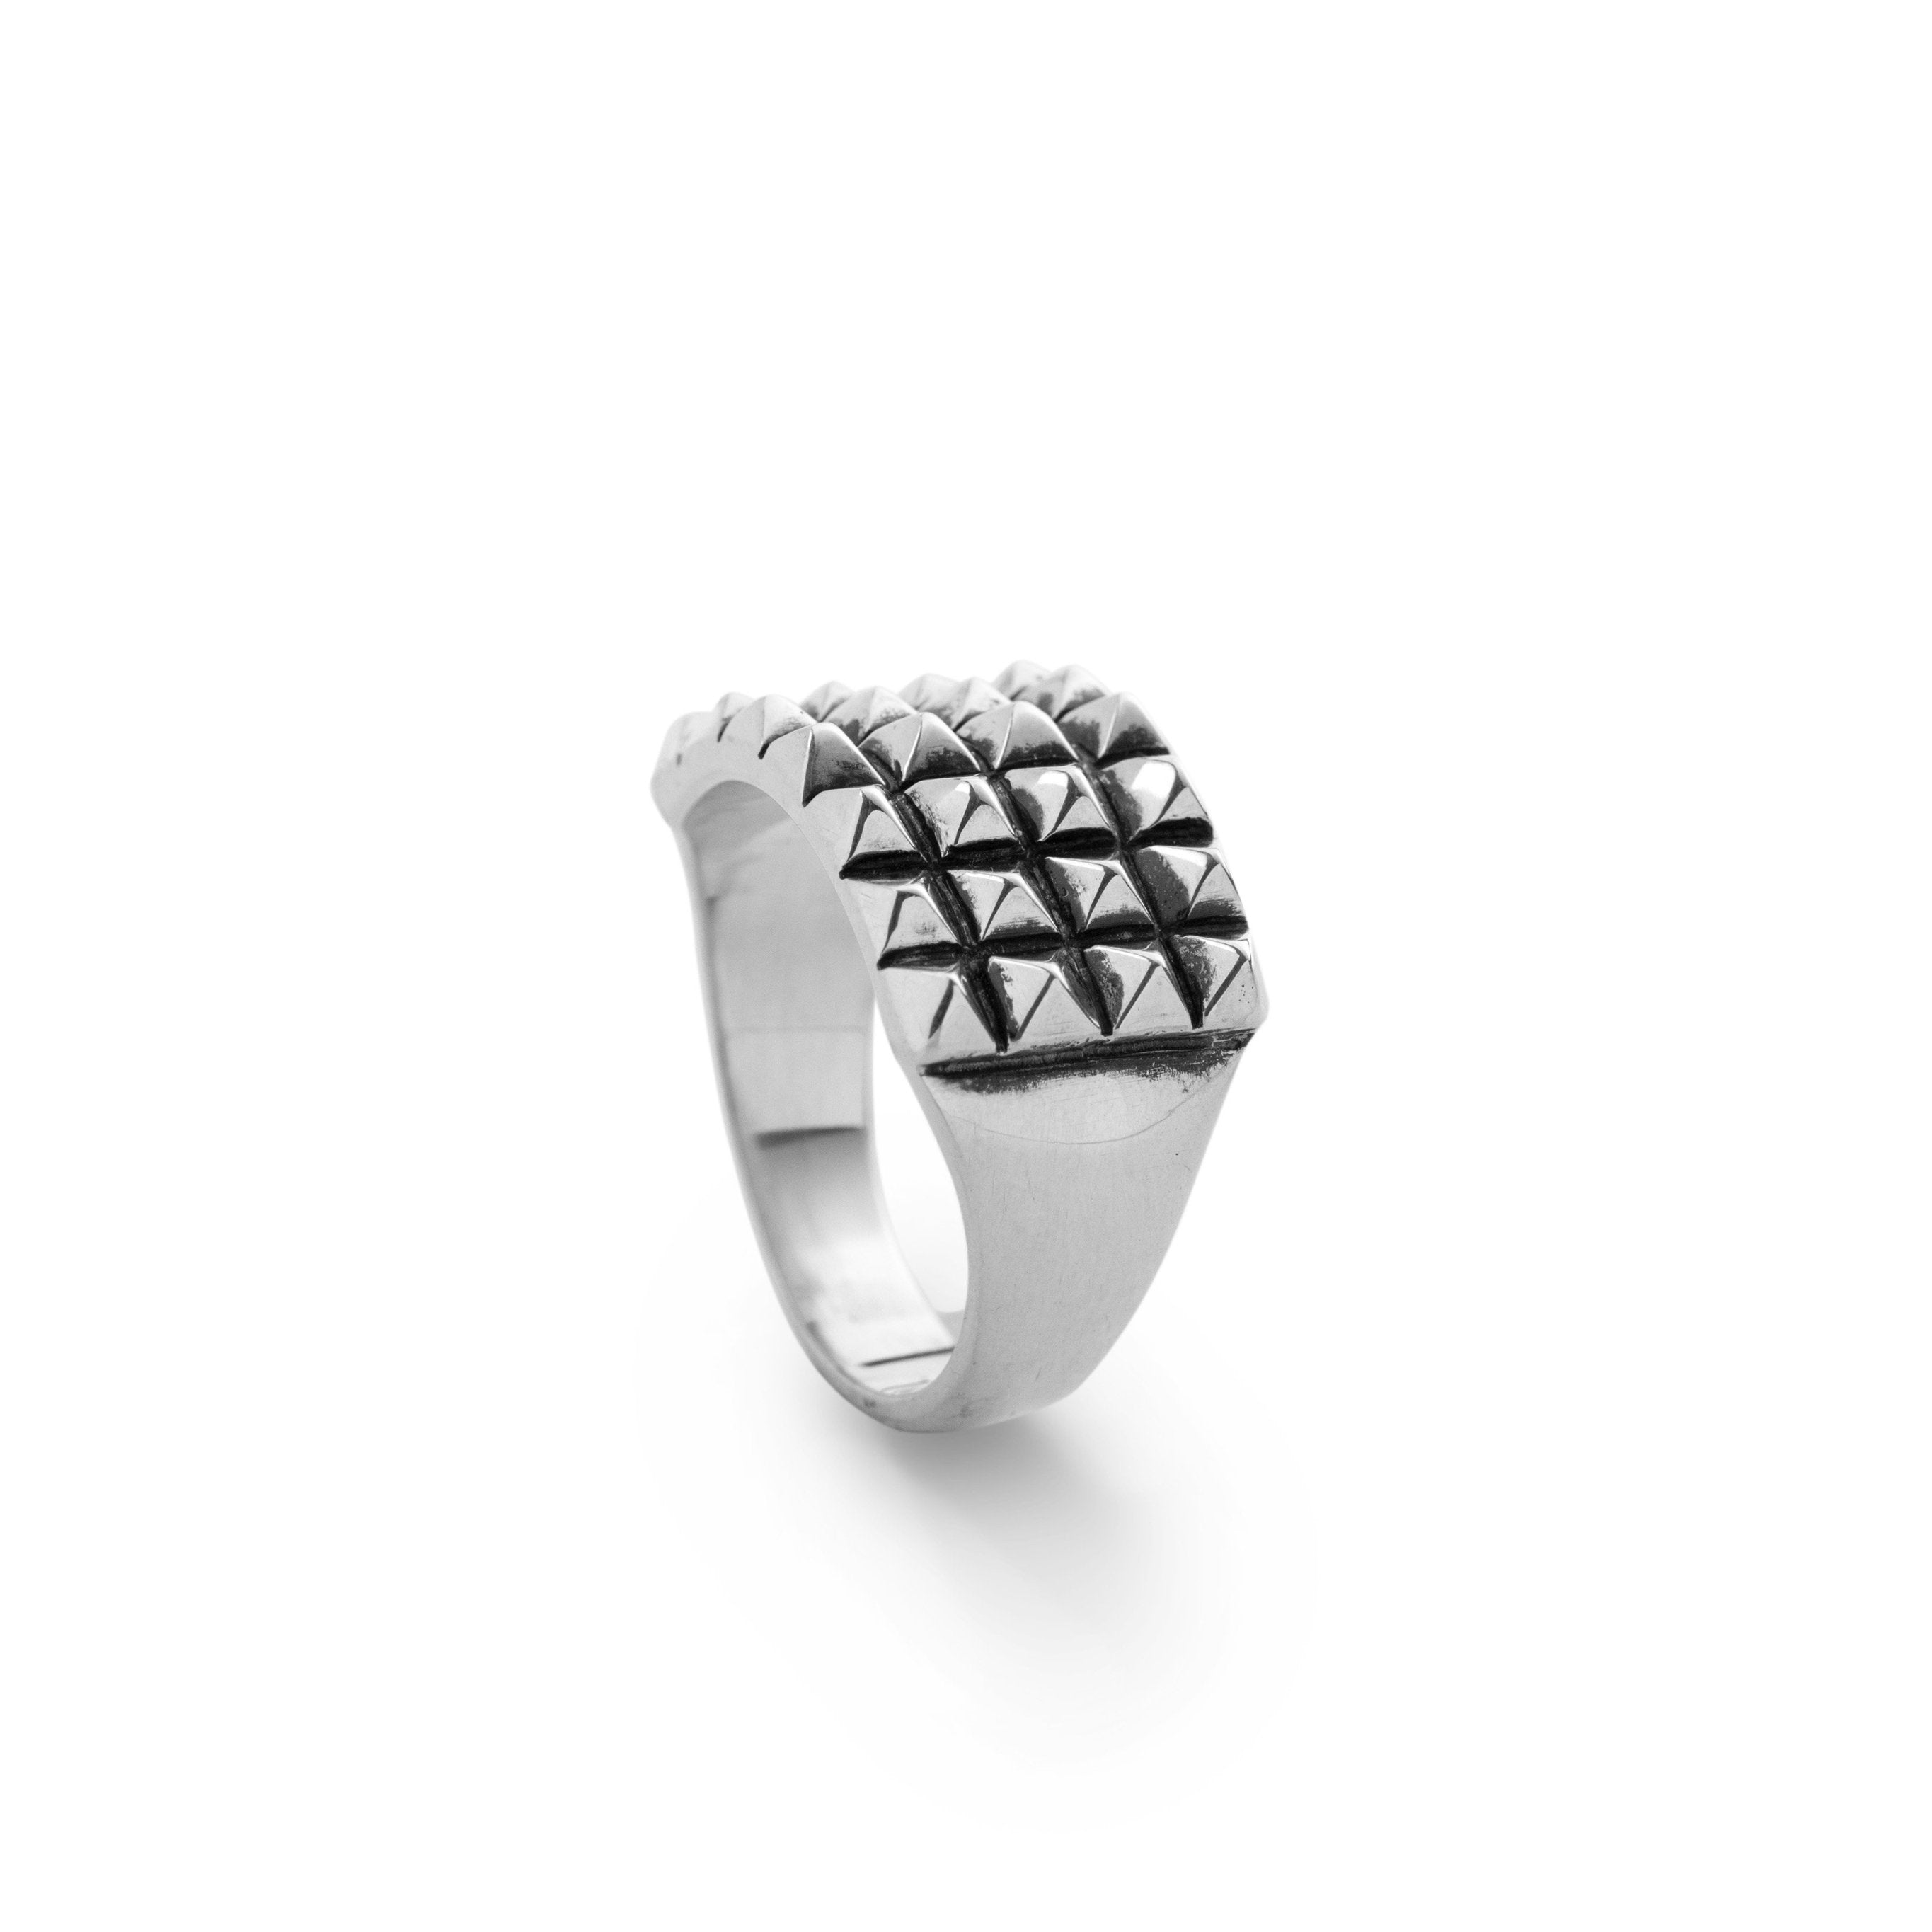 The Studs Ring